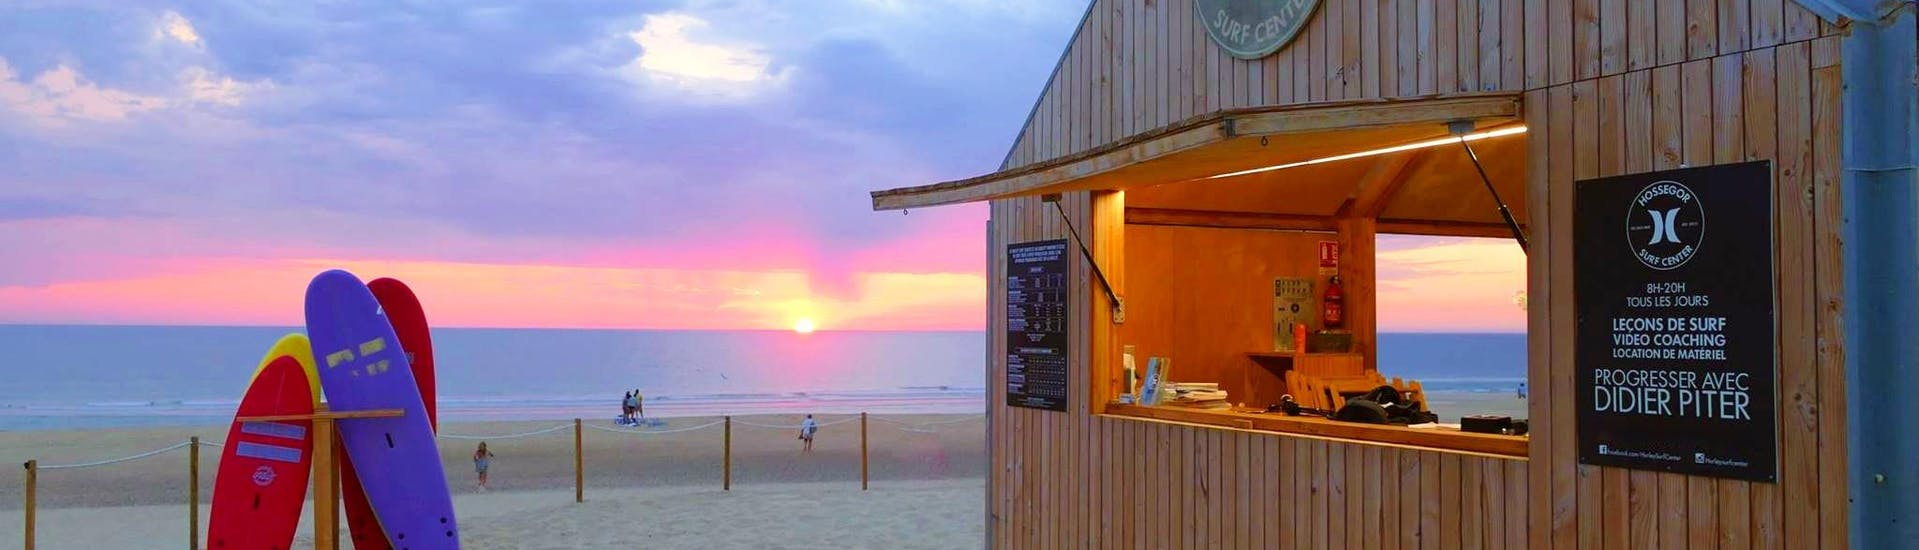 View from the Hossegor Surf Center surf school hut on the Culs Nuls beach in Hossegor at sunset, where the surf lessons take place.